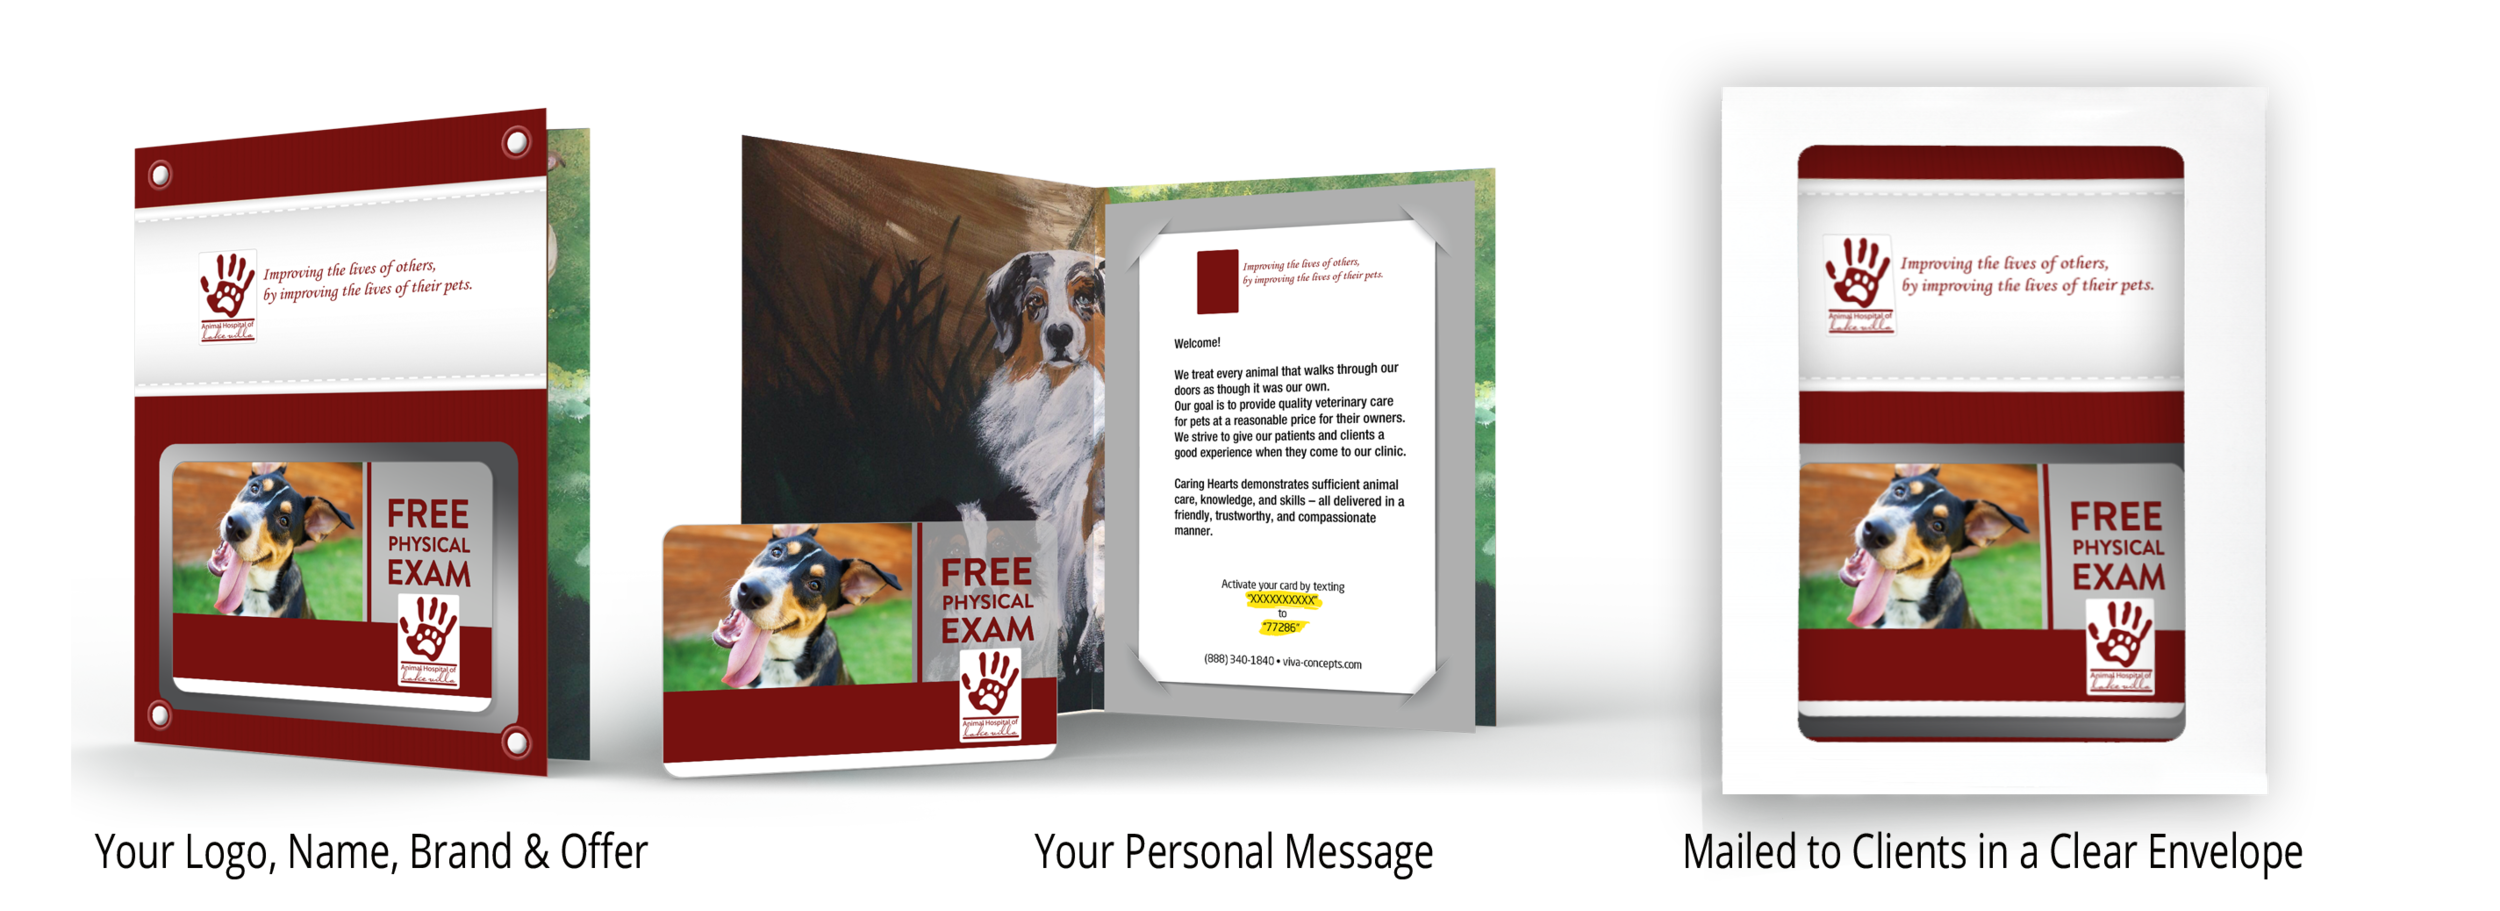 Presentation Card with env.png